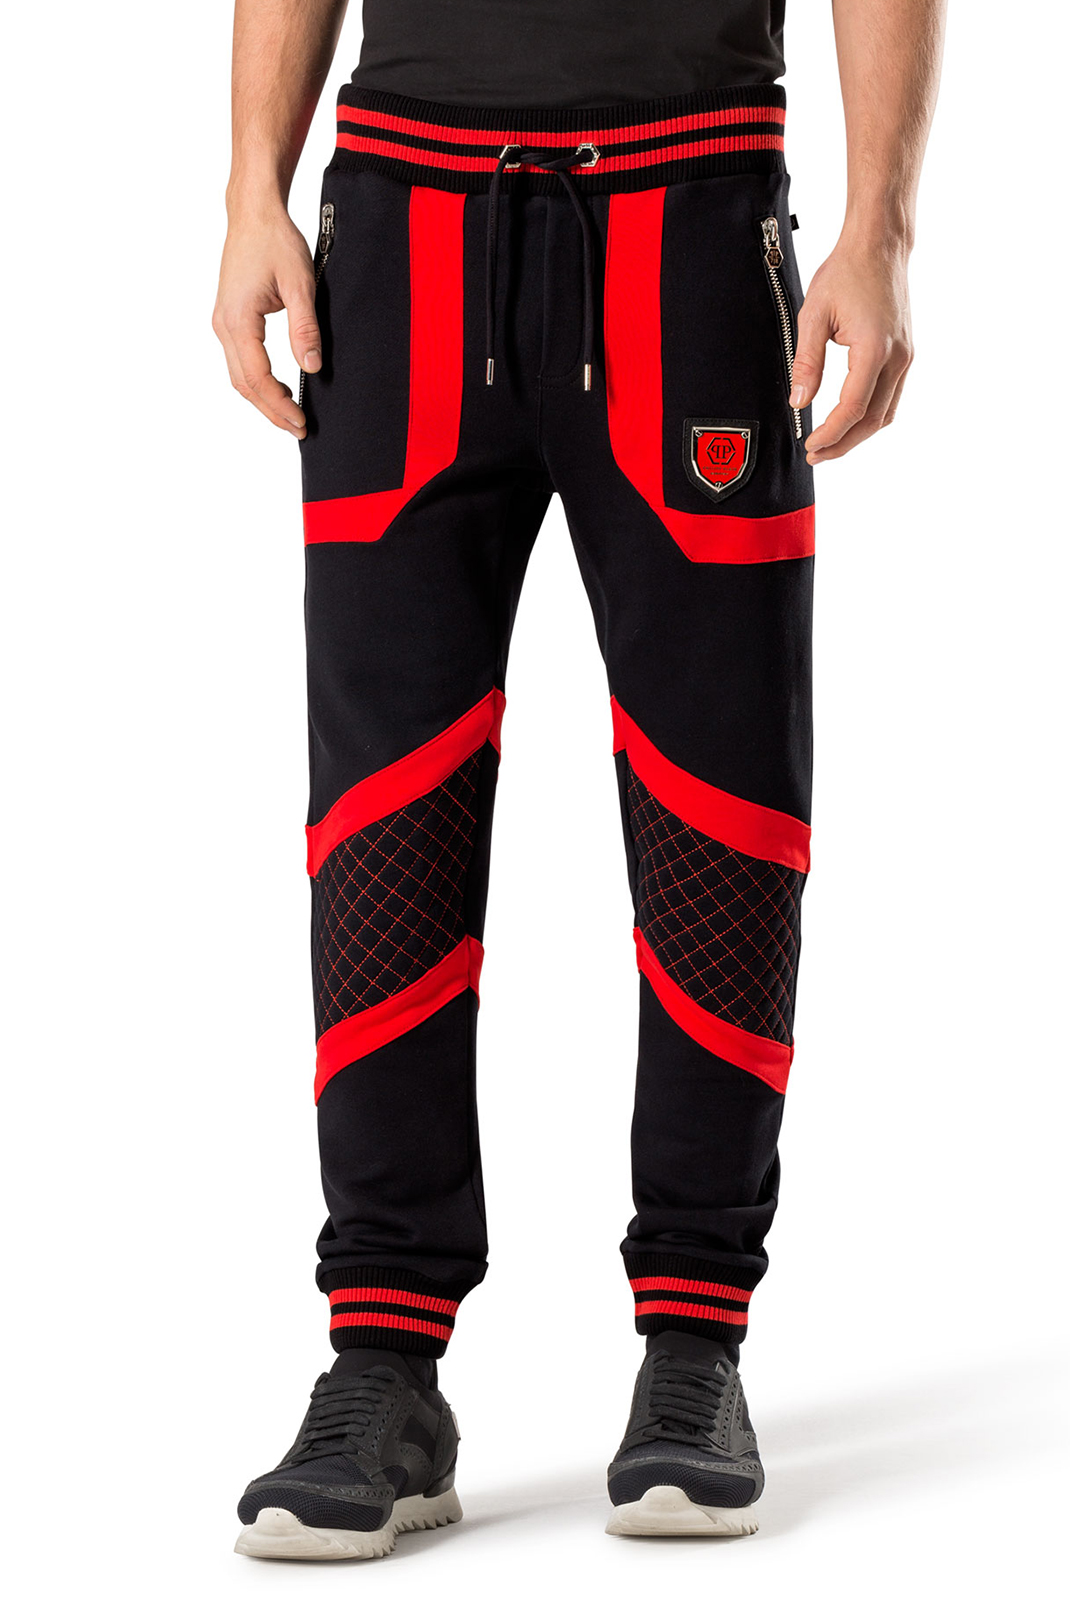 4f2bd7a579ef3 ... Pantalons Philipp plein MJT0049 SO TWO 02R4 BLACK RED ...